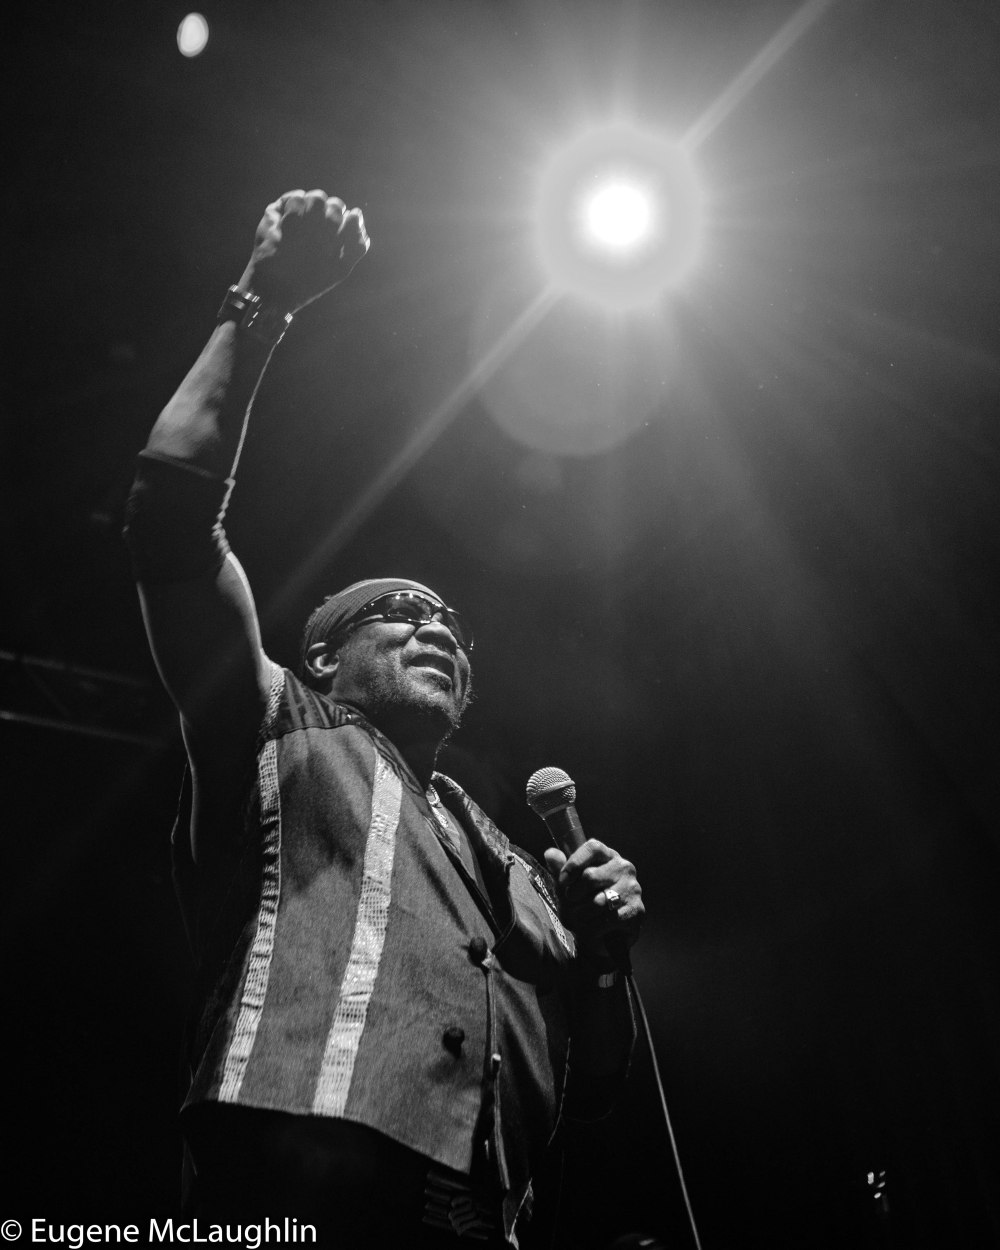 170719 1445 Toots and the Maytals, Leamington 2017